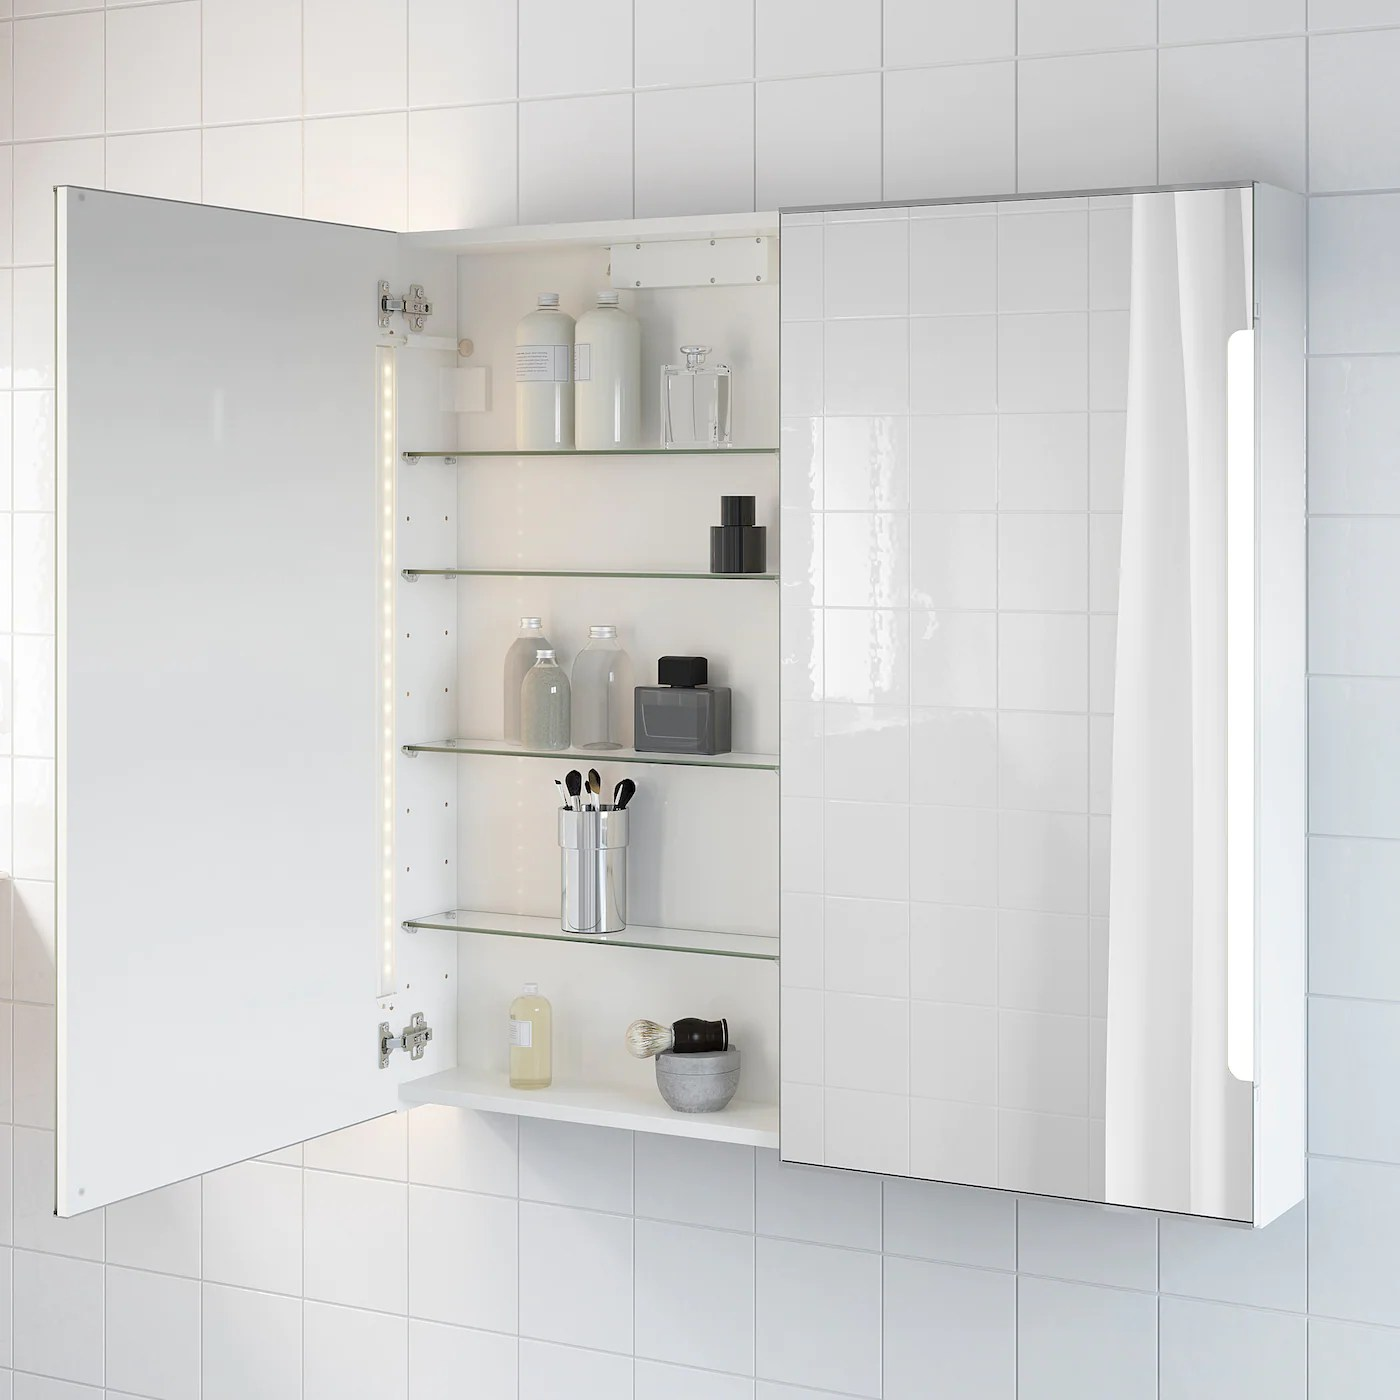 Spiegelschrank Ikea Storjorm Mirror Cab 2 Door/built-in Lighting, White, 100x14x96 Cm - Ikea